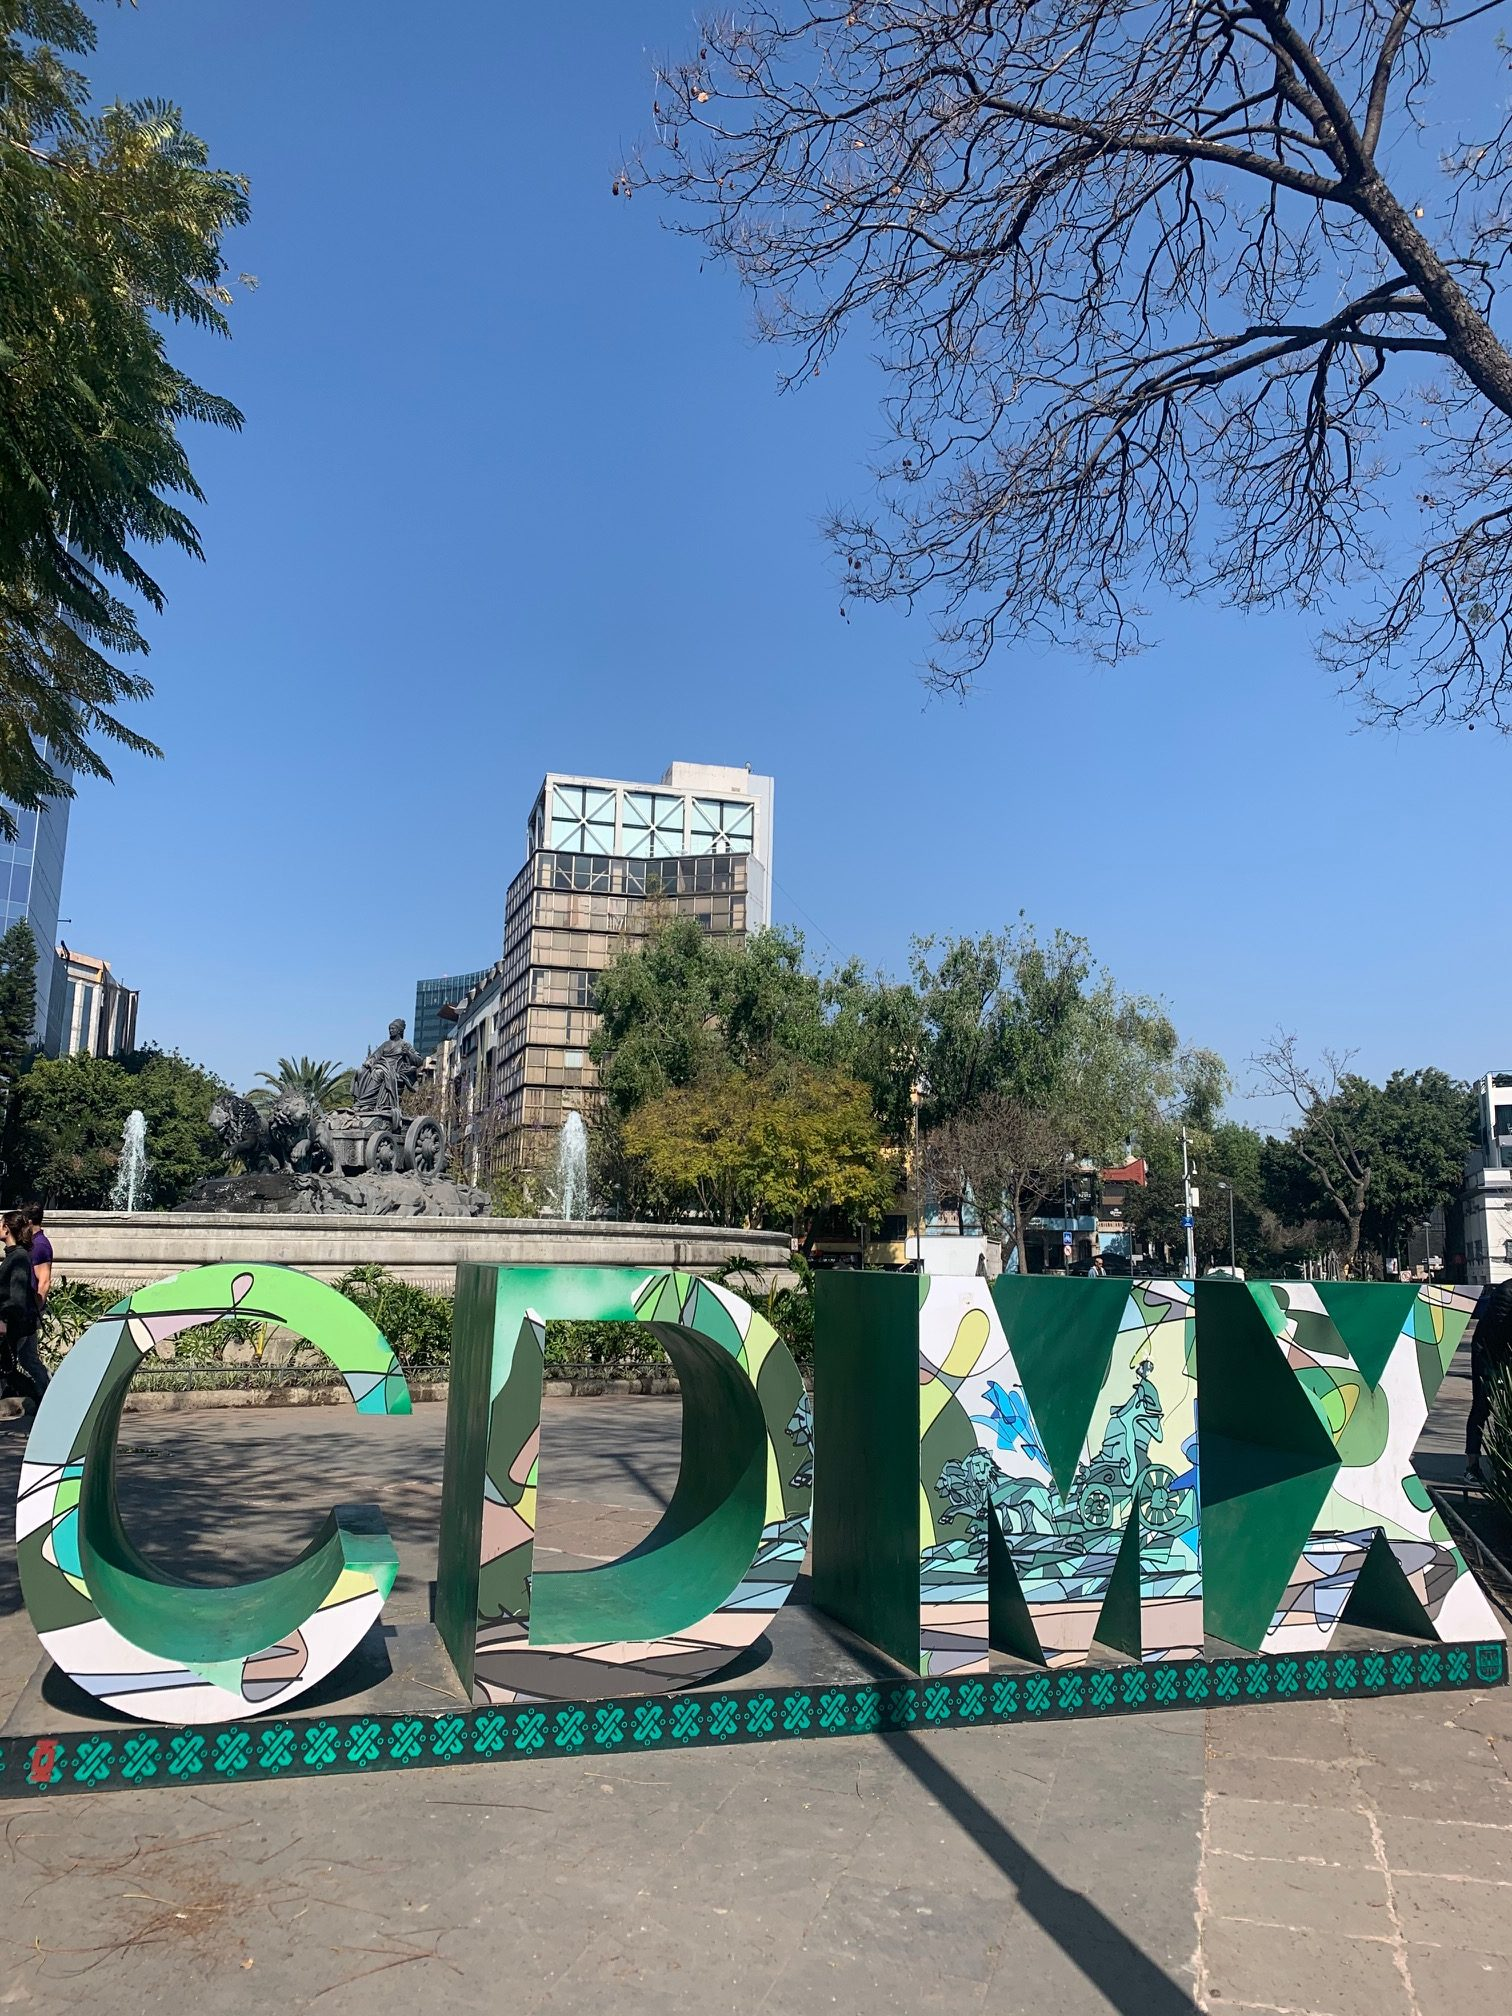 Our 'dangerous' experiences in Mexico City.